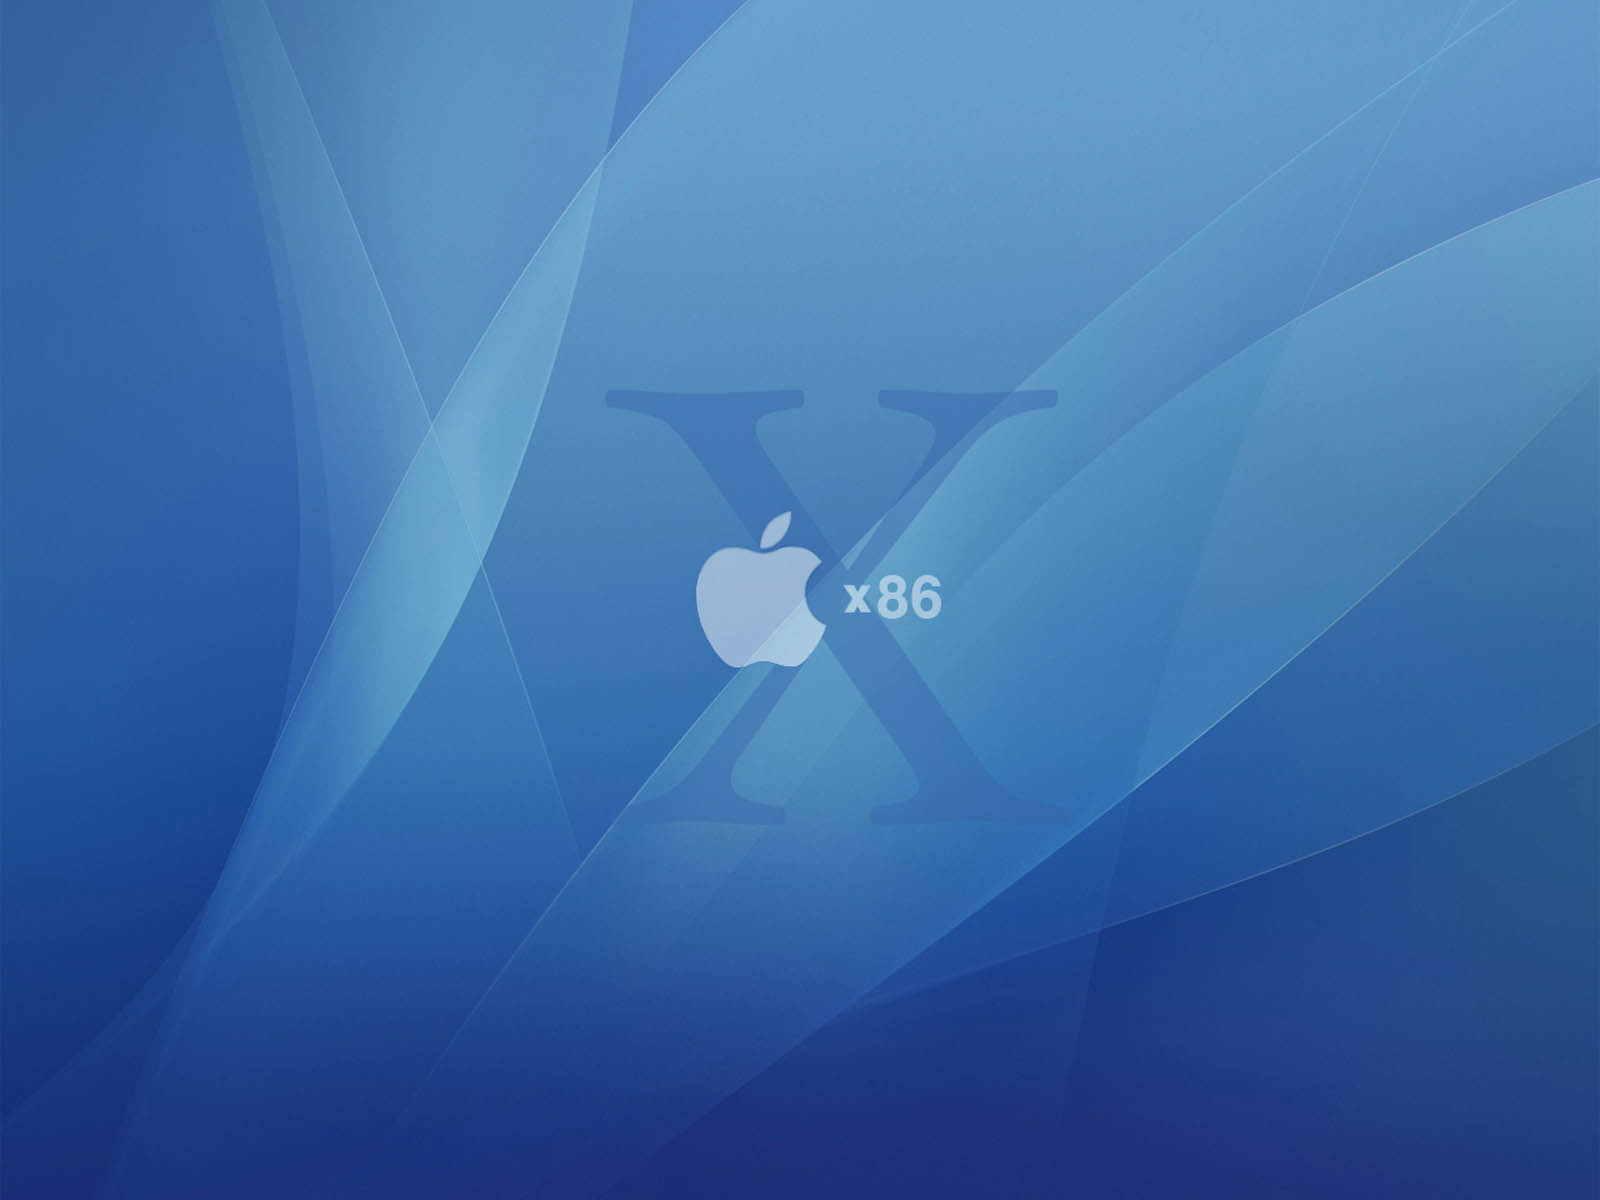 Tag Mac OS X Wallpapers Backgrounds Photos Pictures and Images 1600x1200